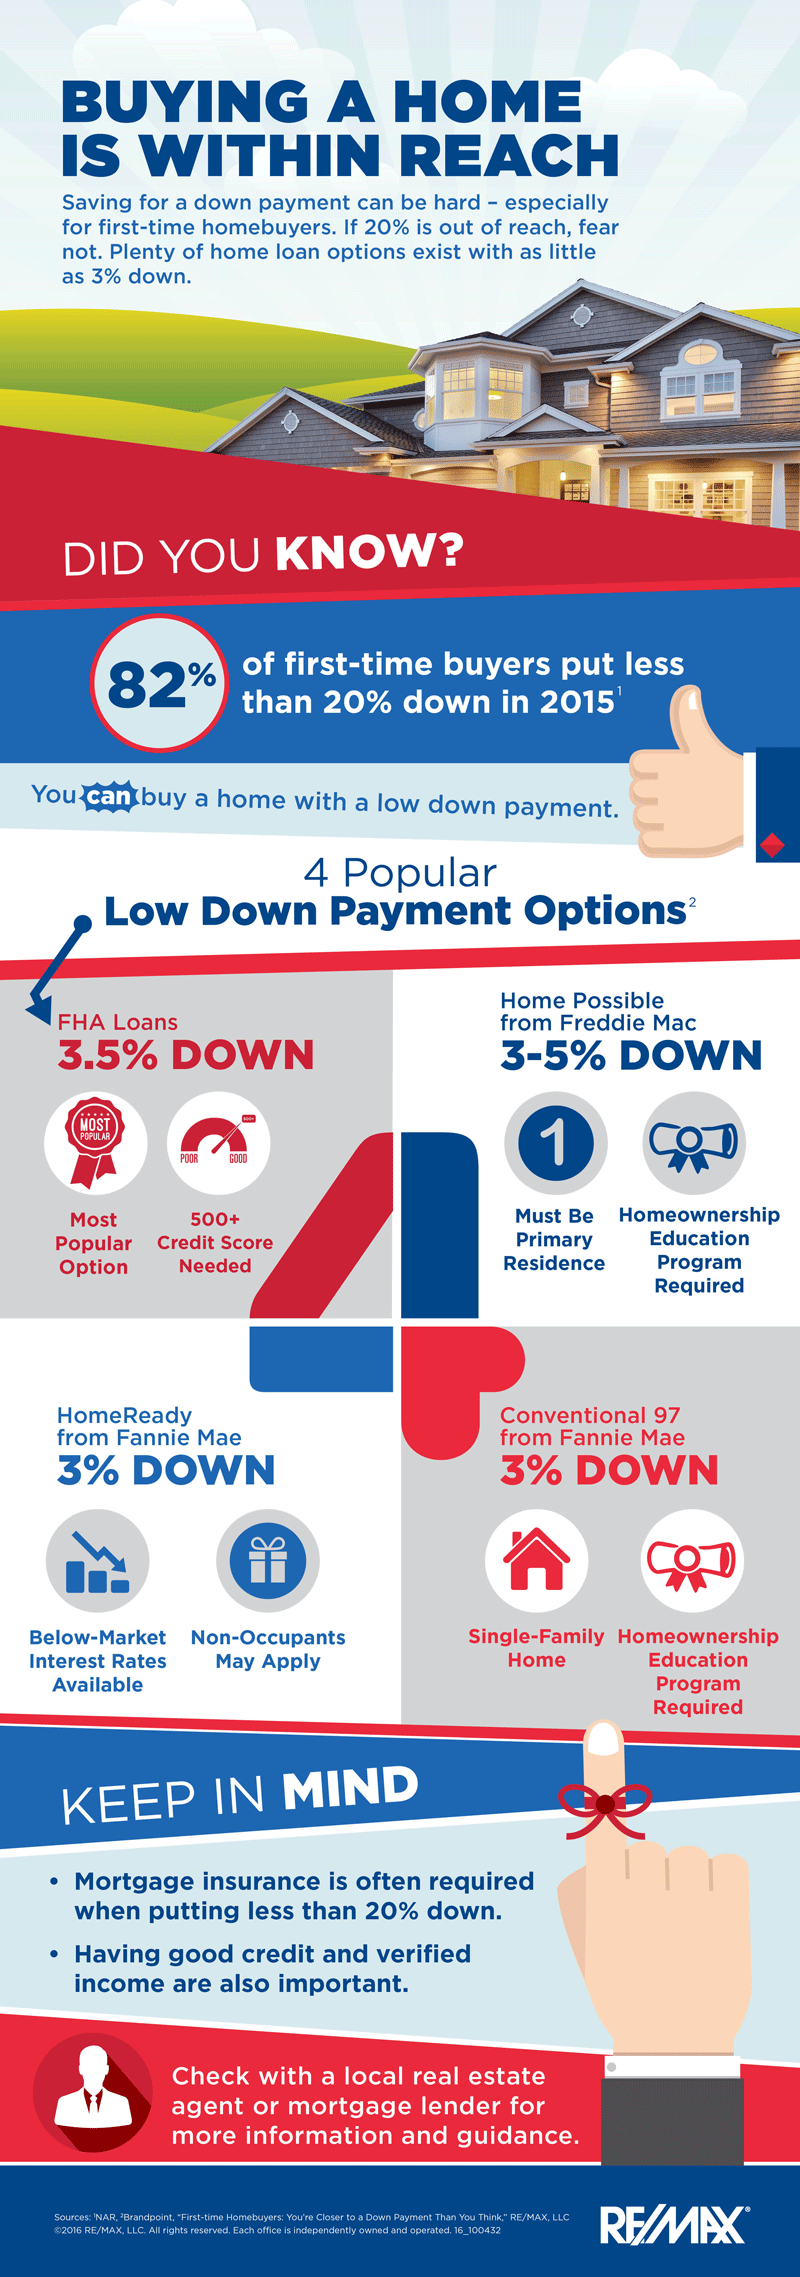 Low Down Payment Options For Buying A Home